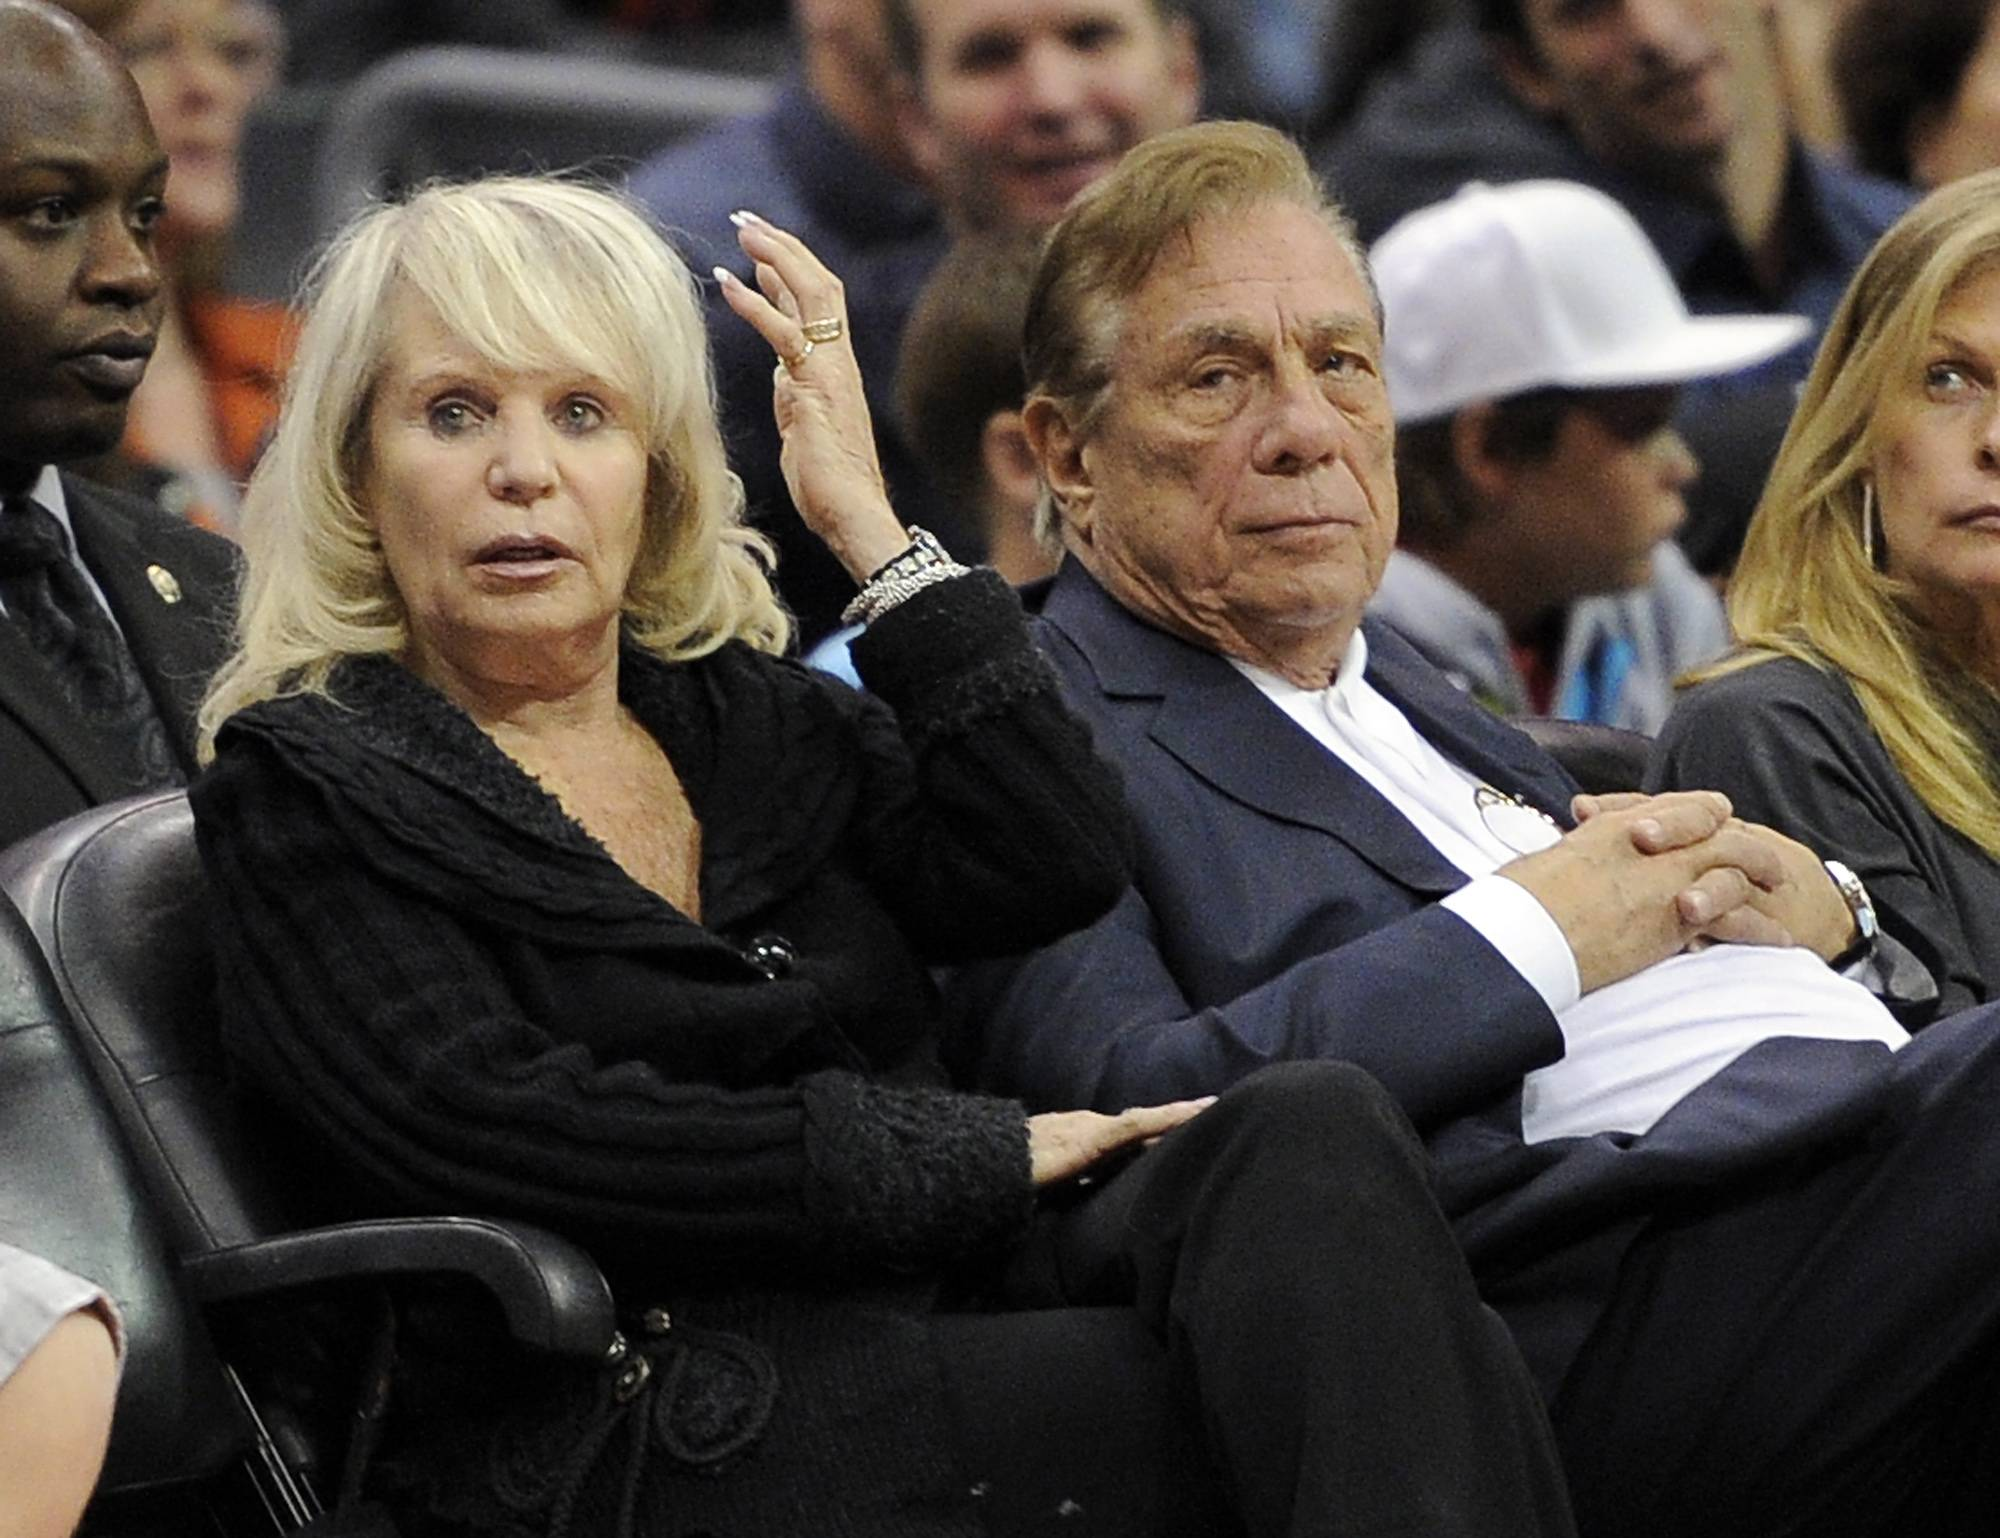 "Los Angeles Clippers owner Donald Sterling agreed Wednesday to sign off on selling the team to former Microsoft CEO Steve Ballmer for what would be a record $2 billion, according to his attorney. Sterling ""has made an agreement with the NBA to resolve all their differences"" and as co-owner has given his consent to a deal that was negotiated by his wife, Shelly Sterling, to sell the team, said attorney Maxwell Blecher."